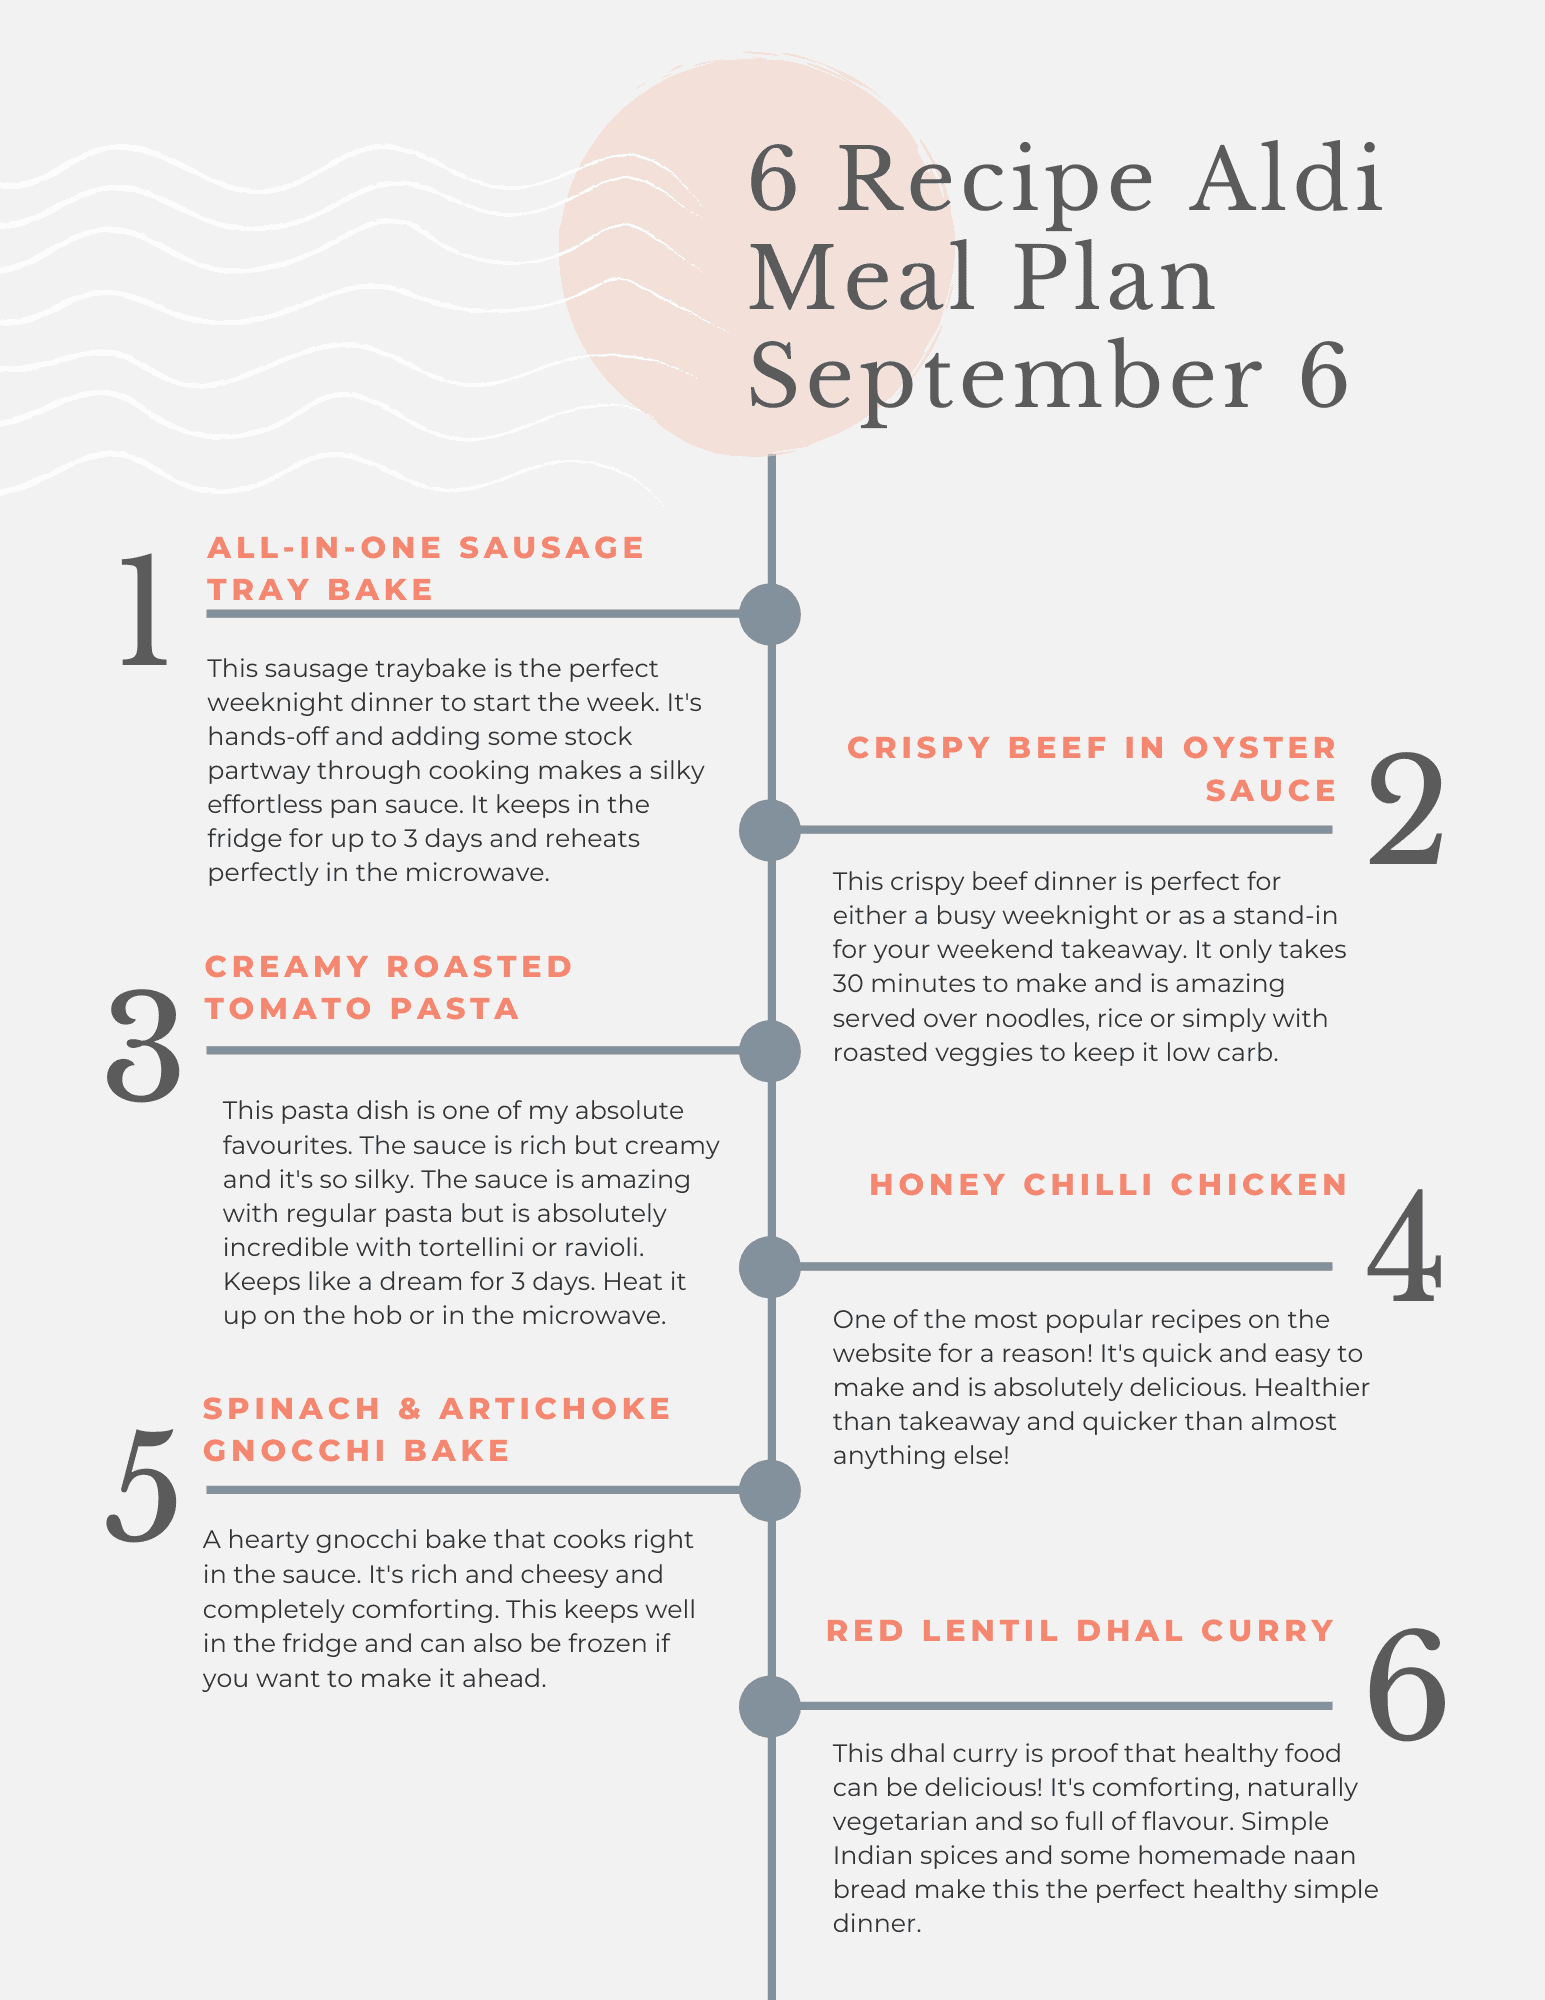 Free printable Aldi meal plan with recipes